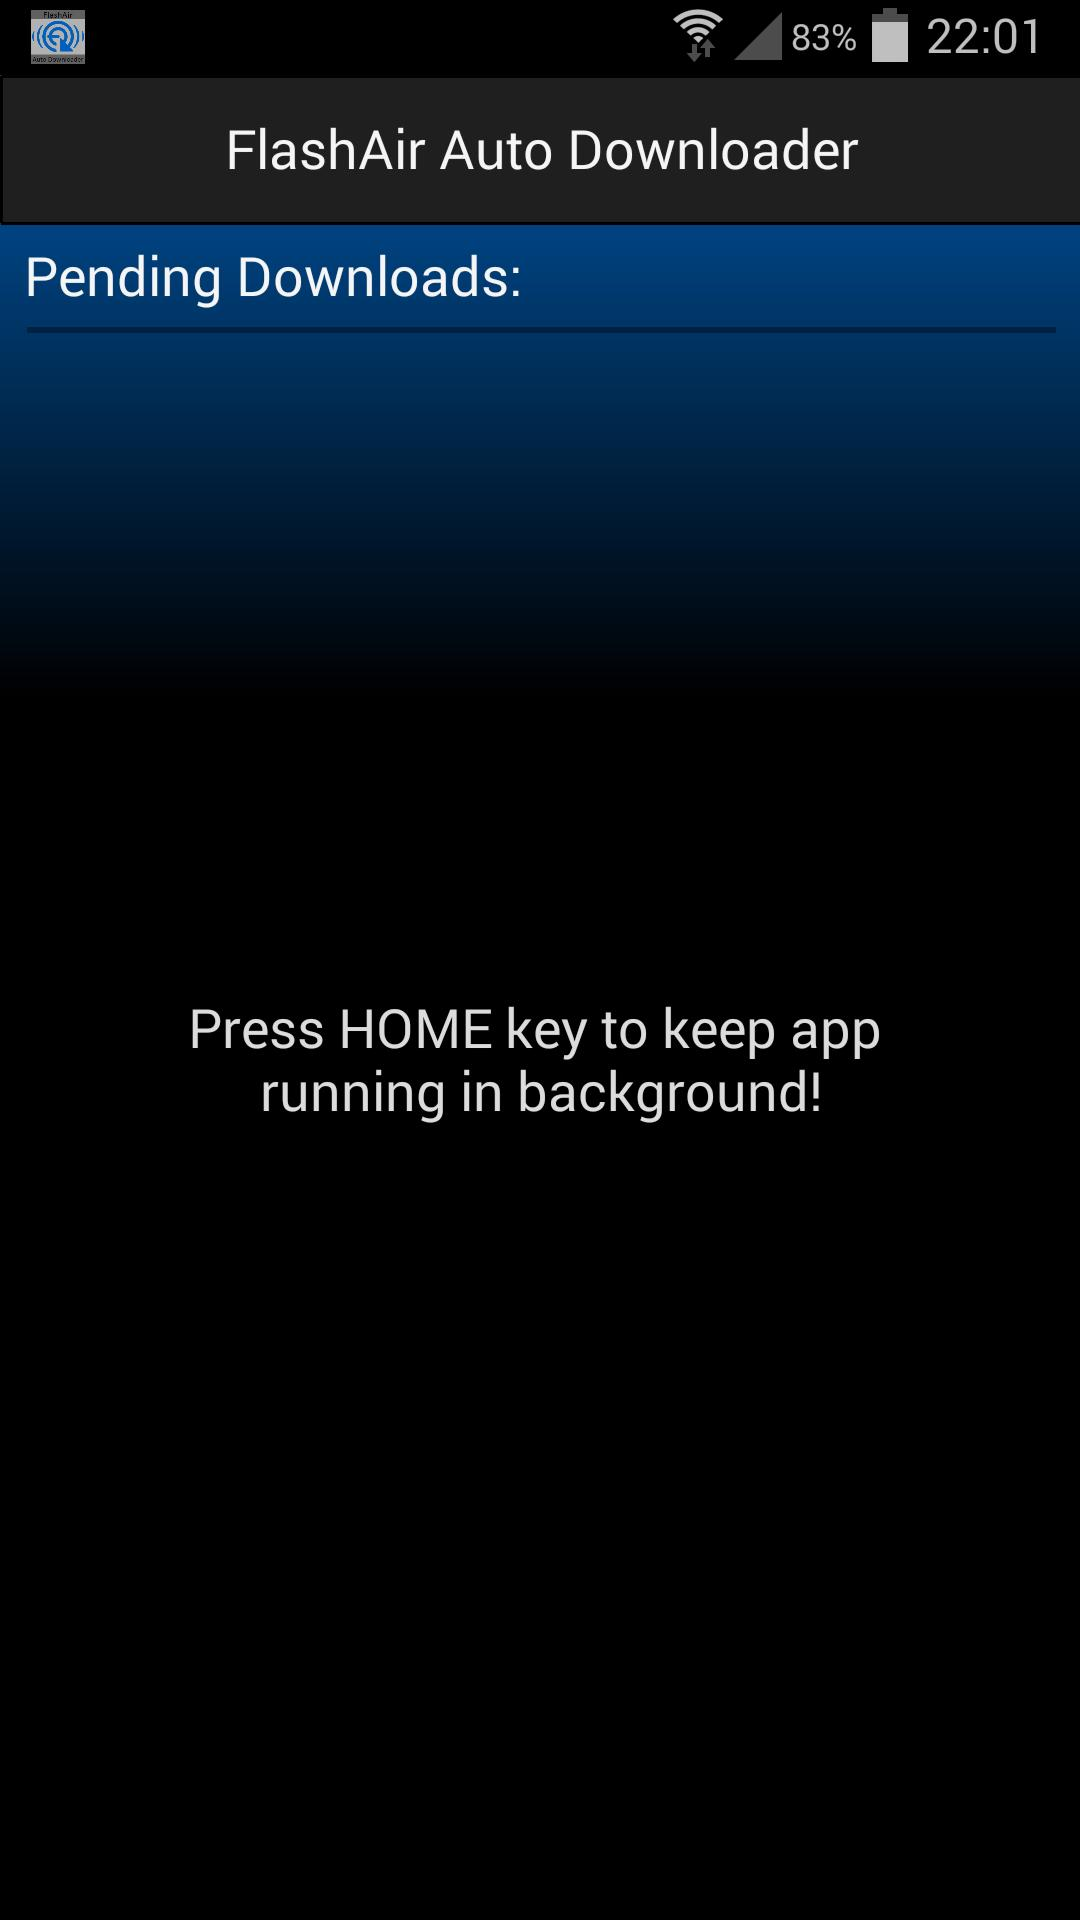 FlashAir Auto Downloader TRAIL for Android - APK Download